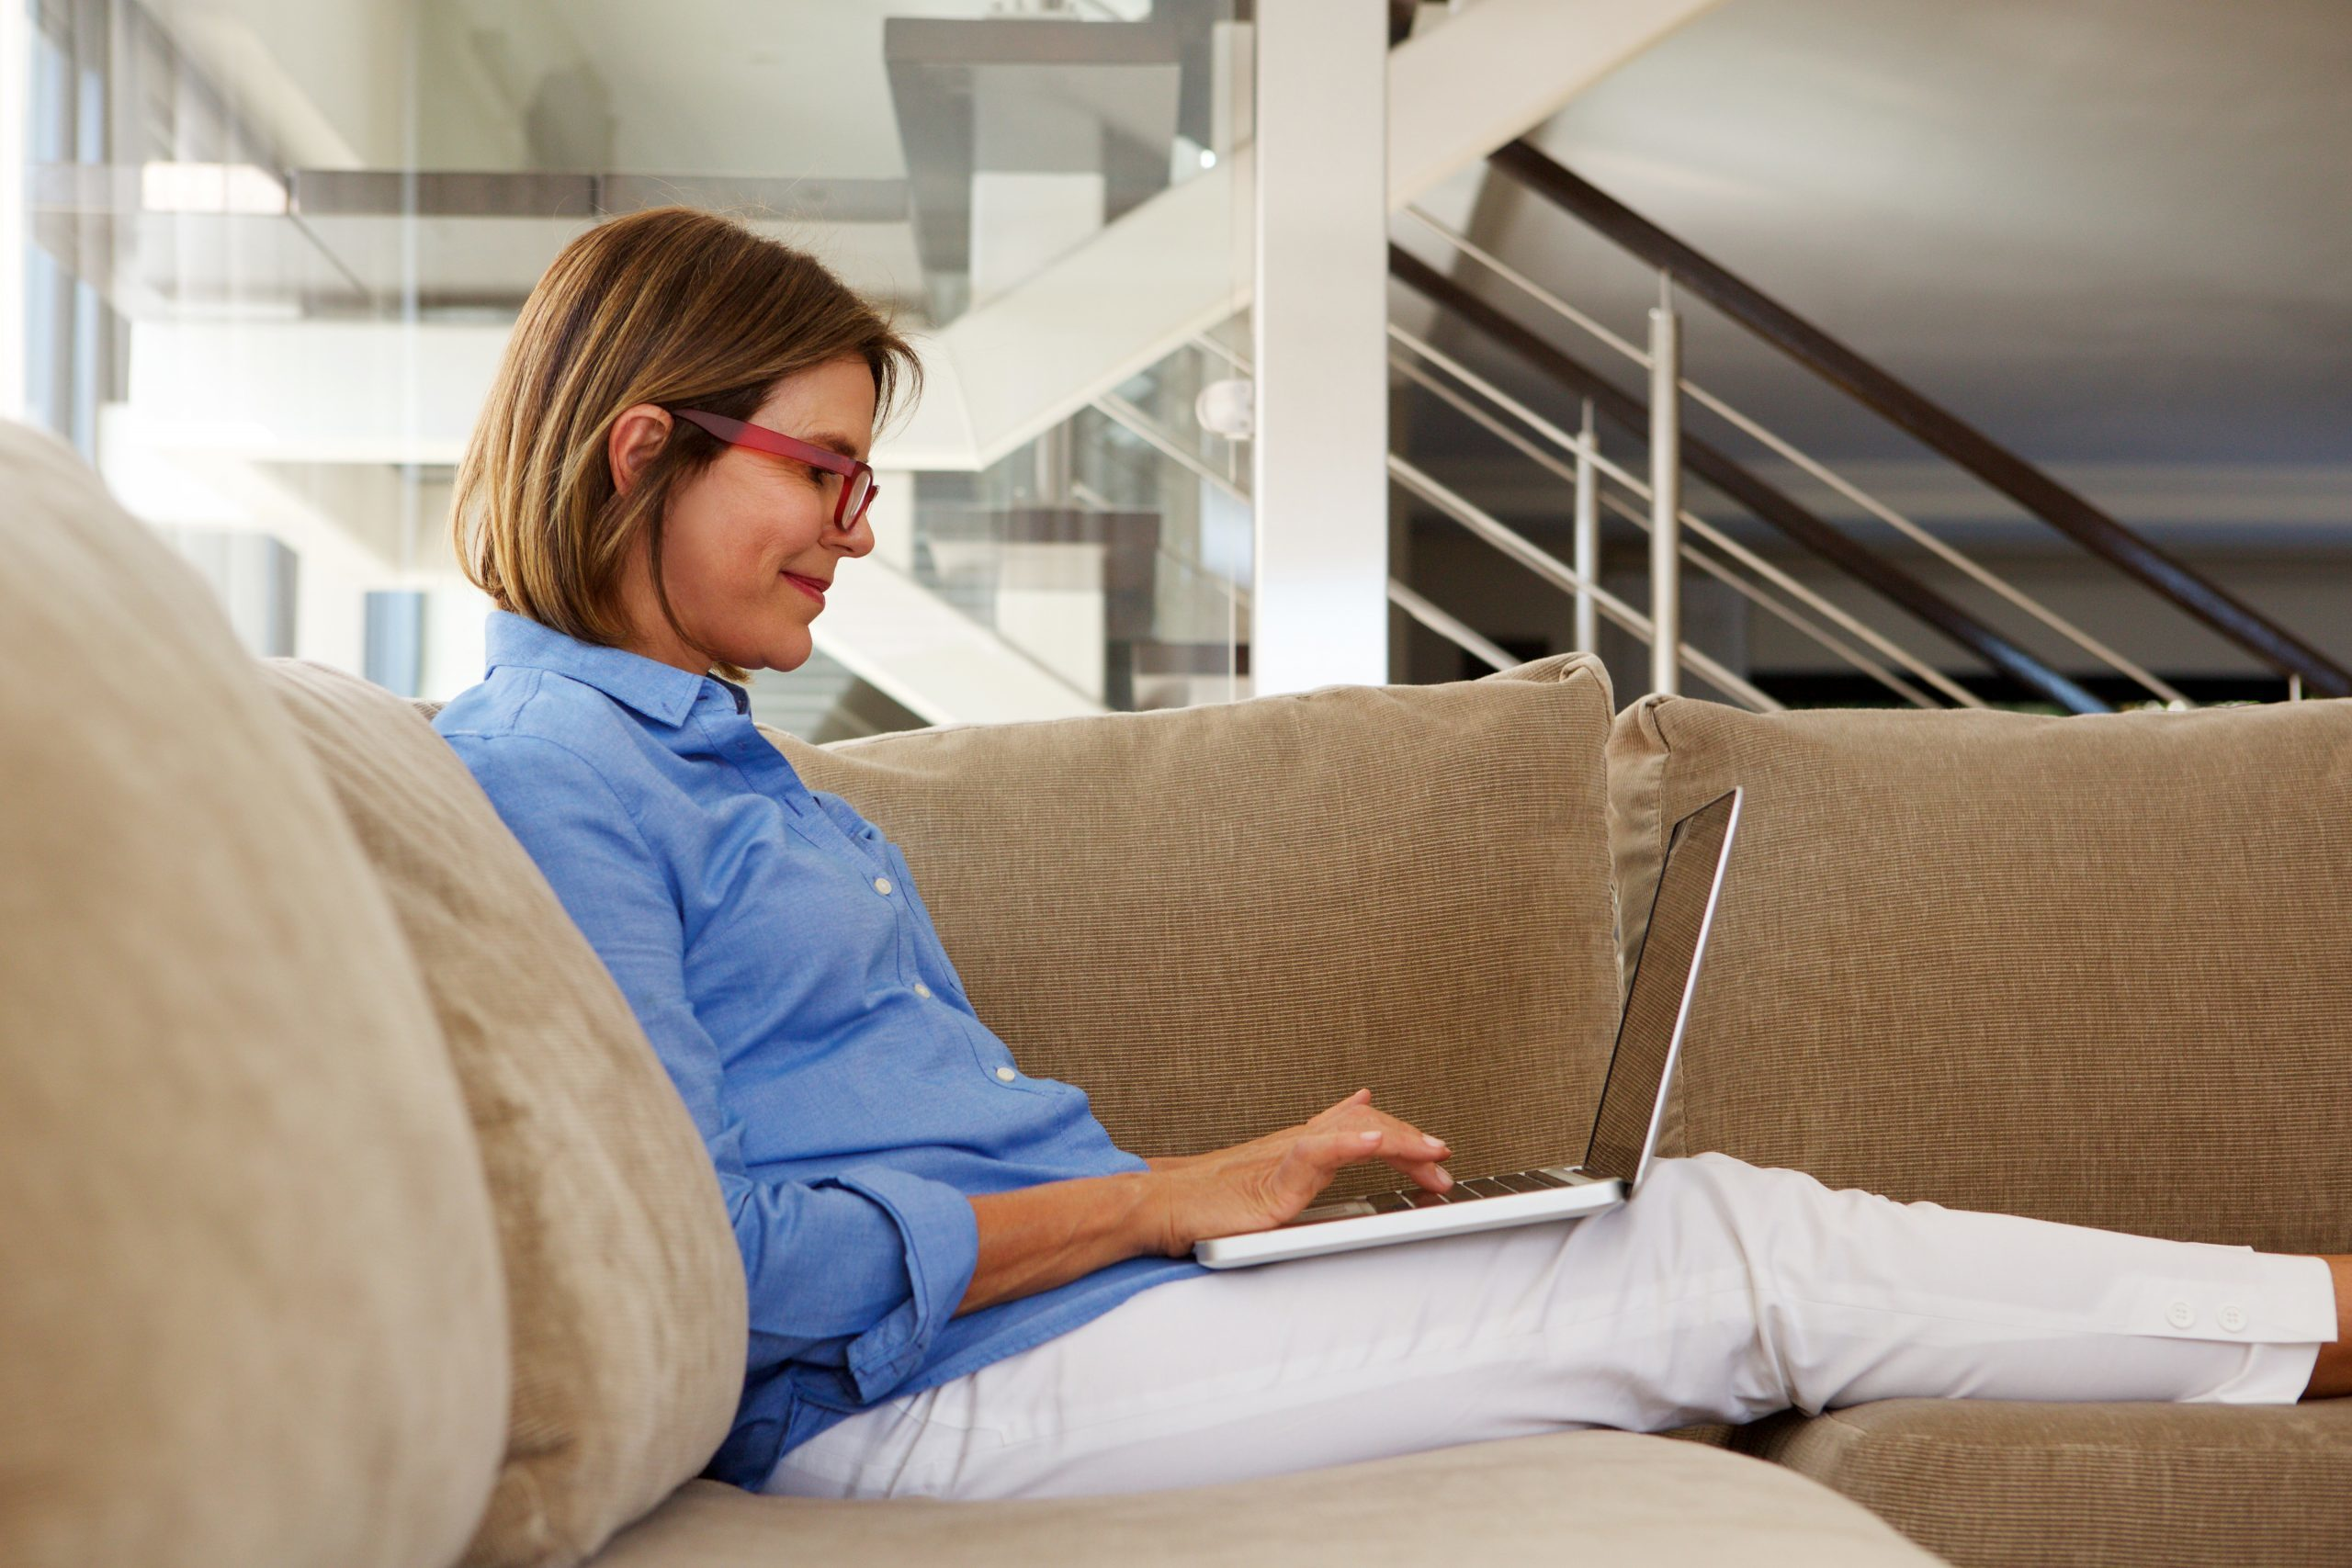 10 Tips to Stay Effective While Working from Home